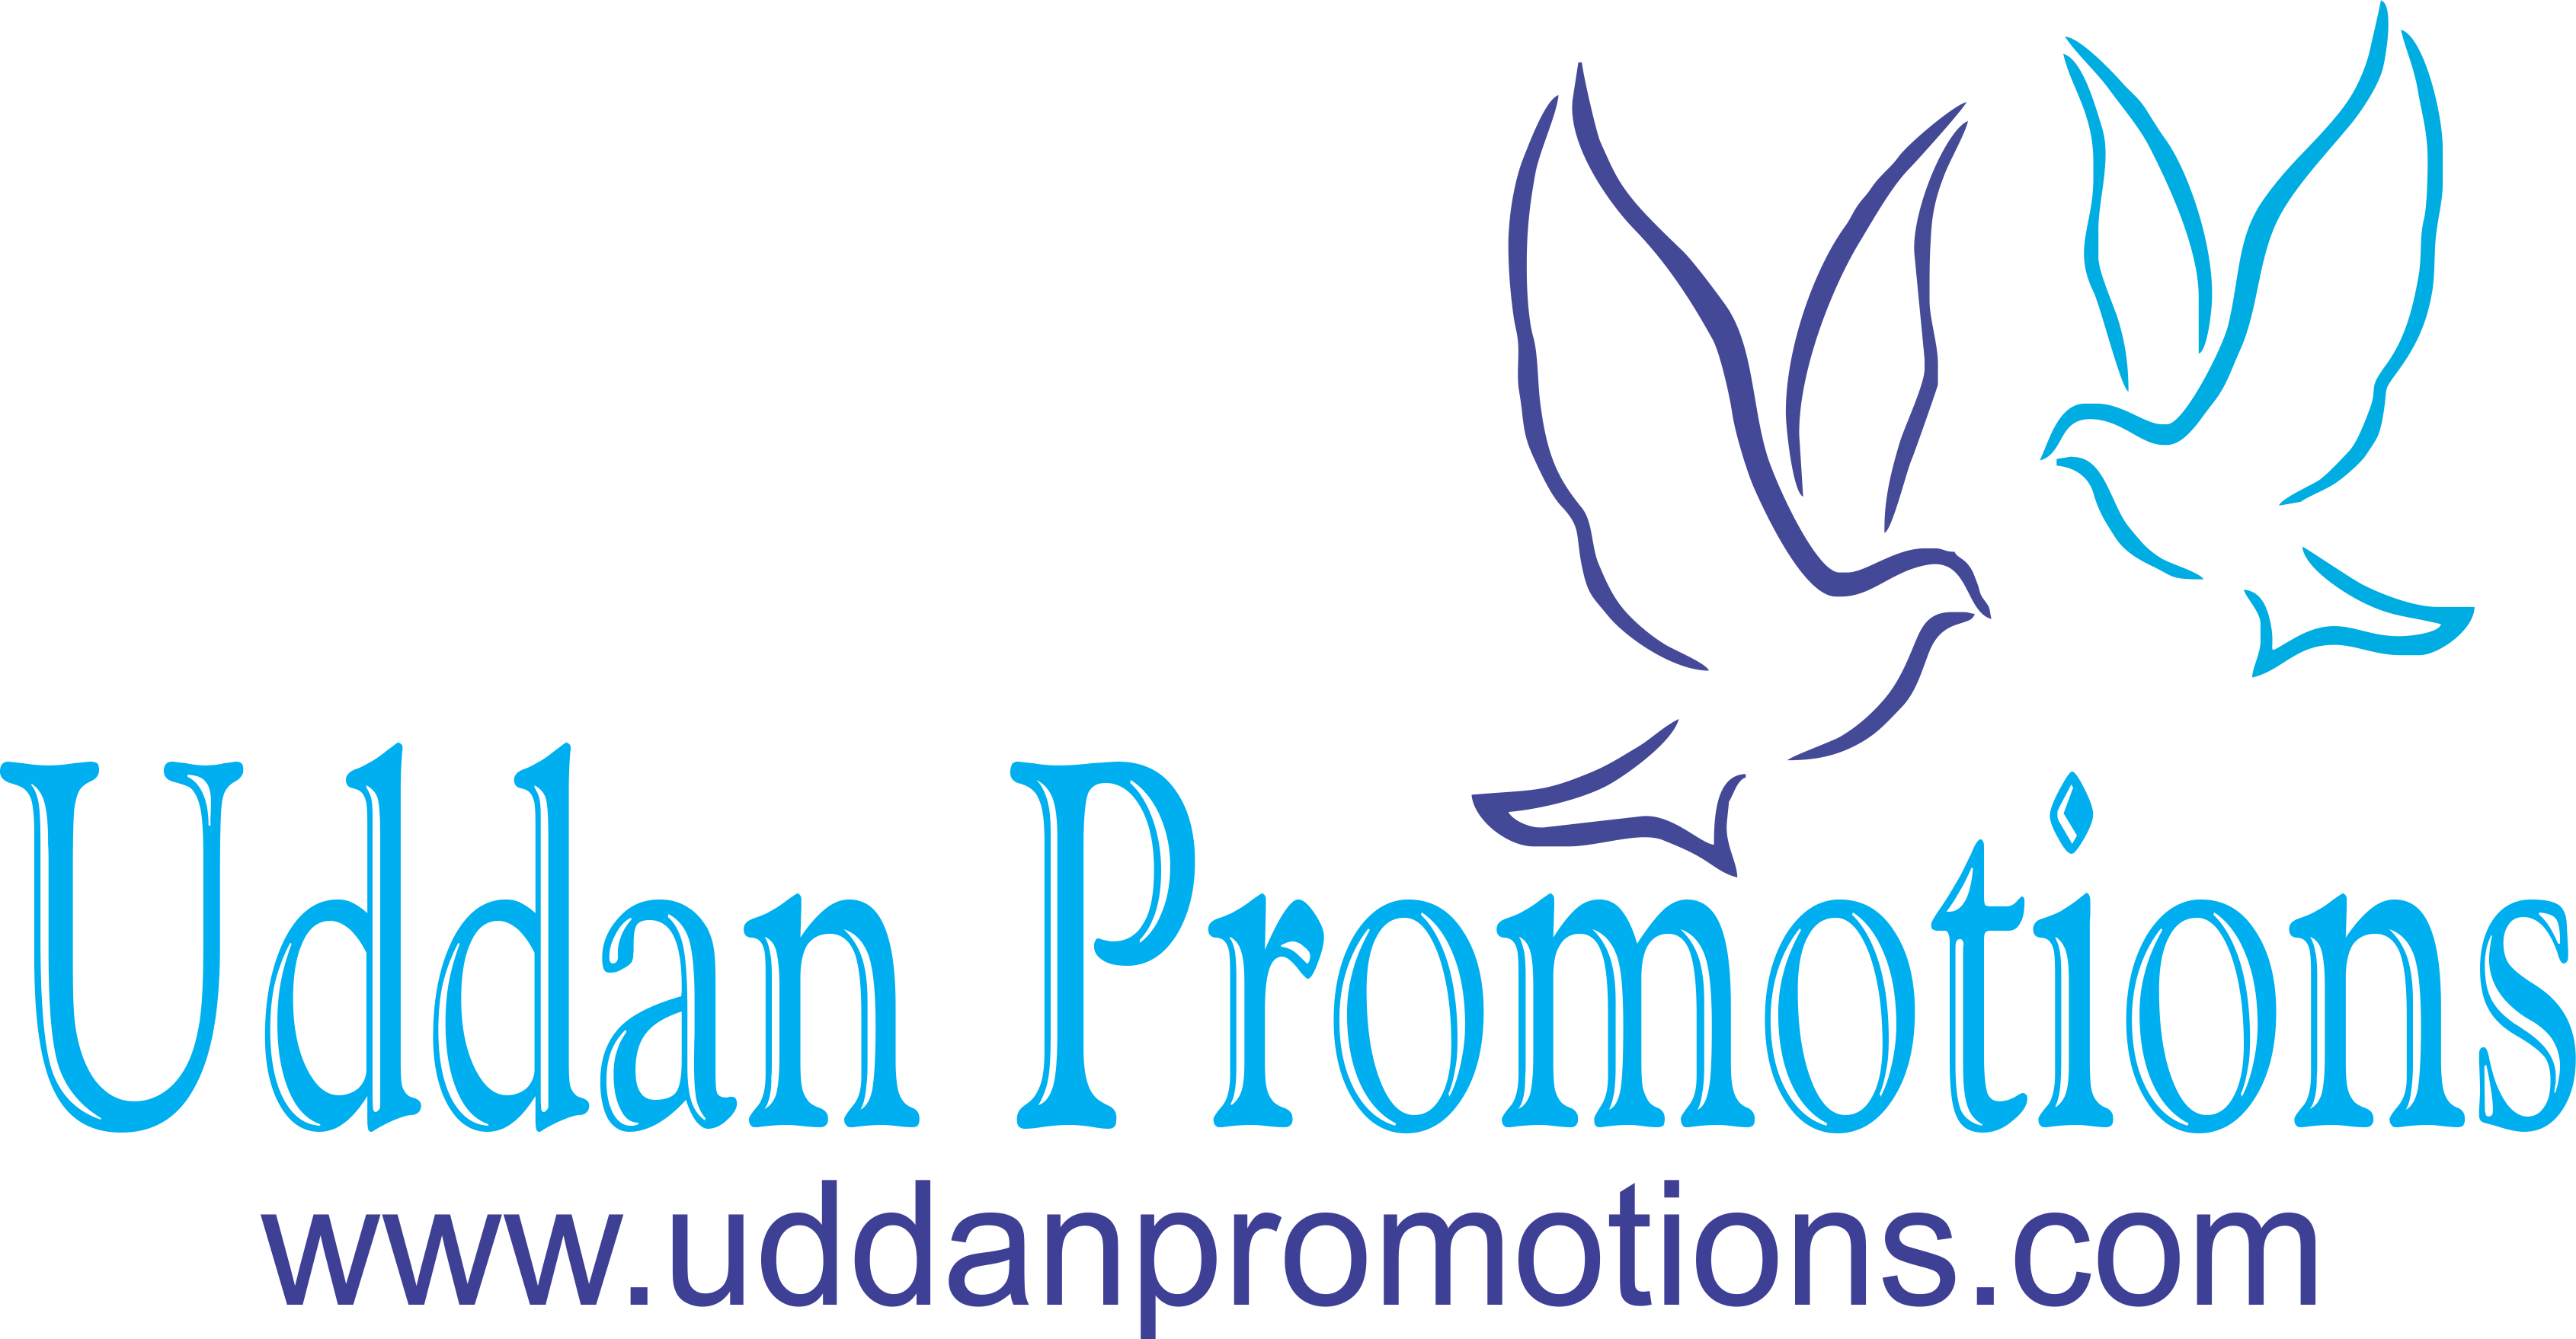 Uddan Promotions Pvt. Ltd.